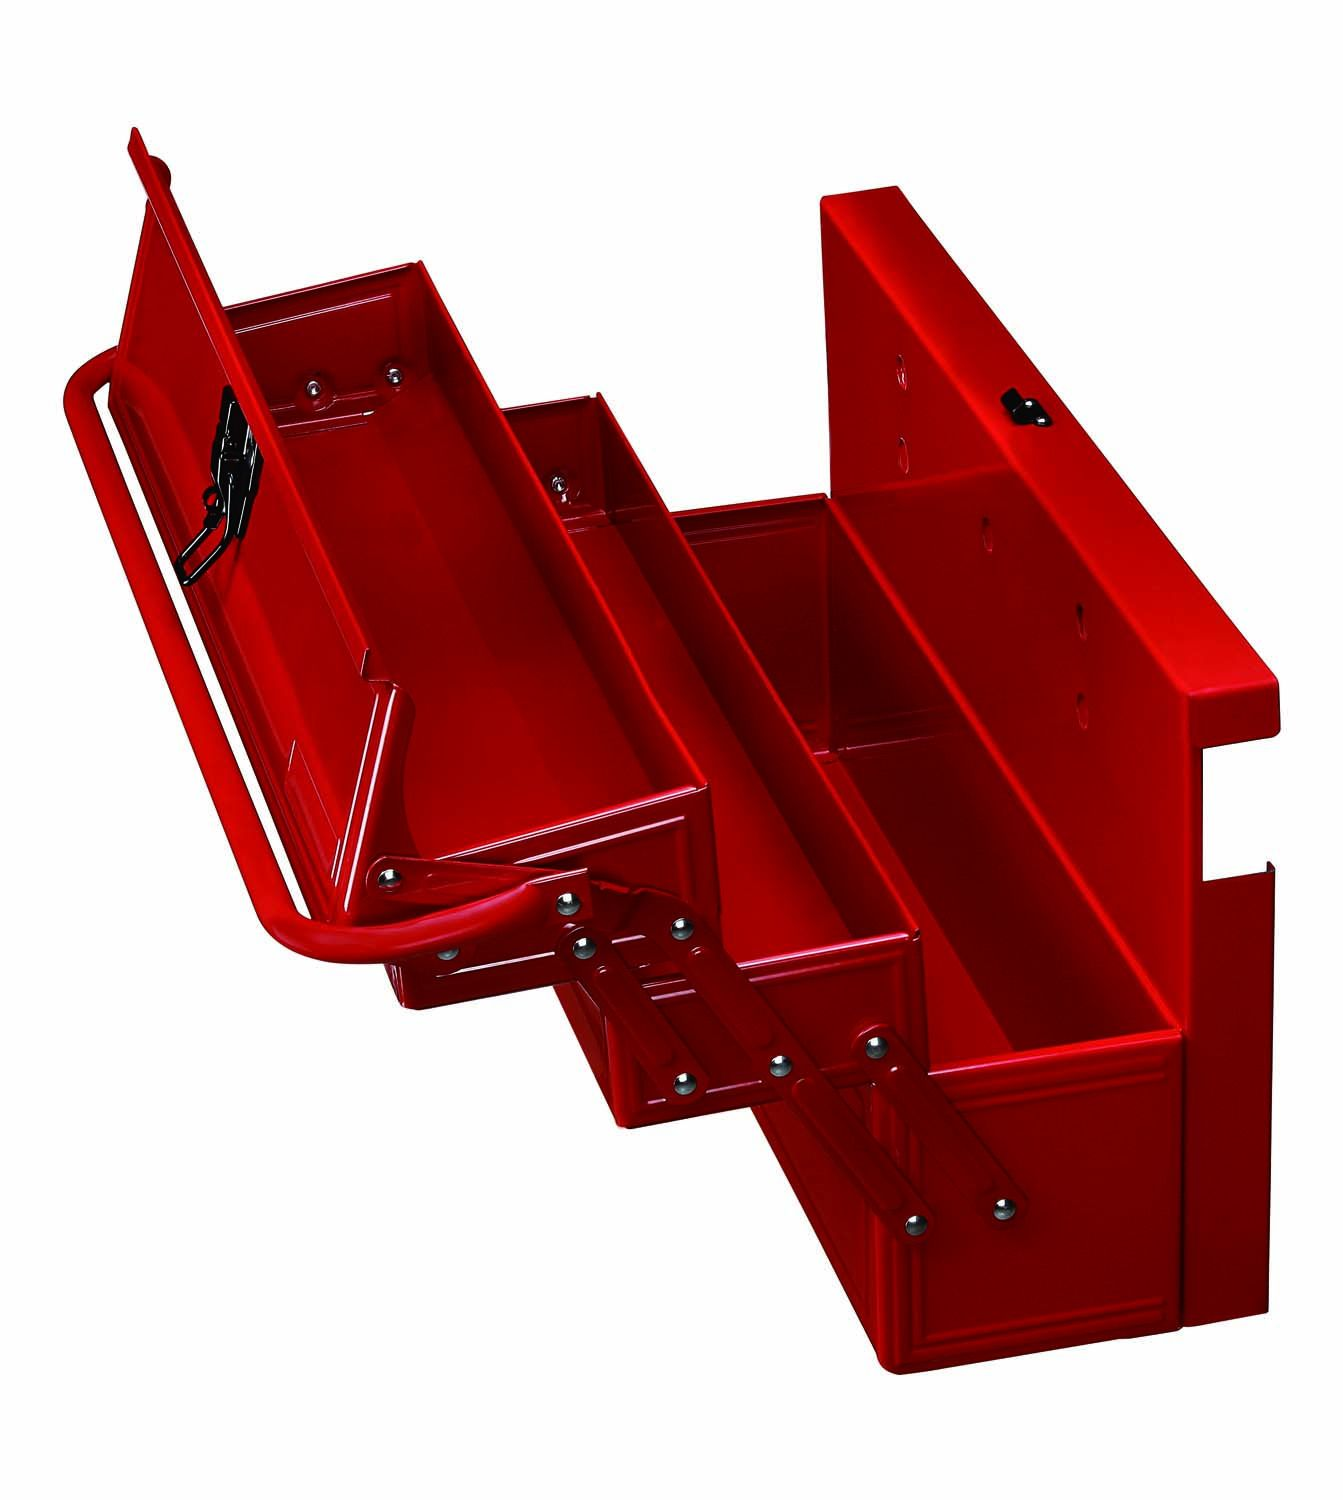 Teng Tools 3 Drawer Cantilever Side Box